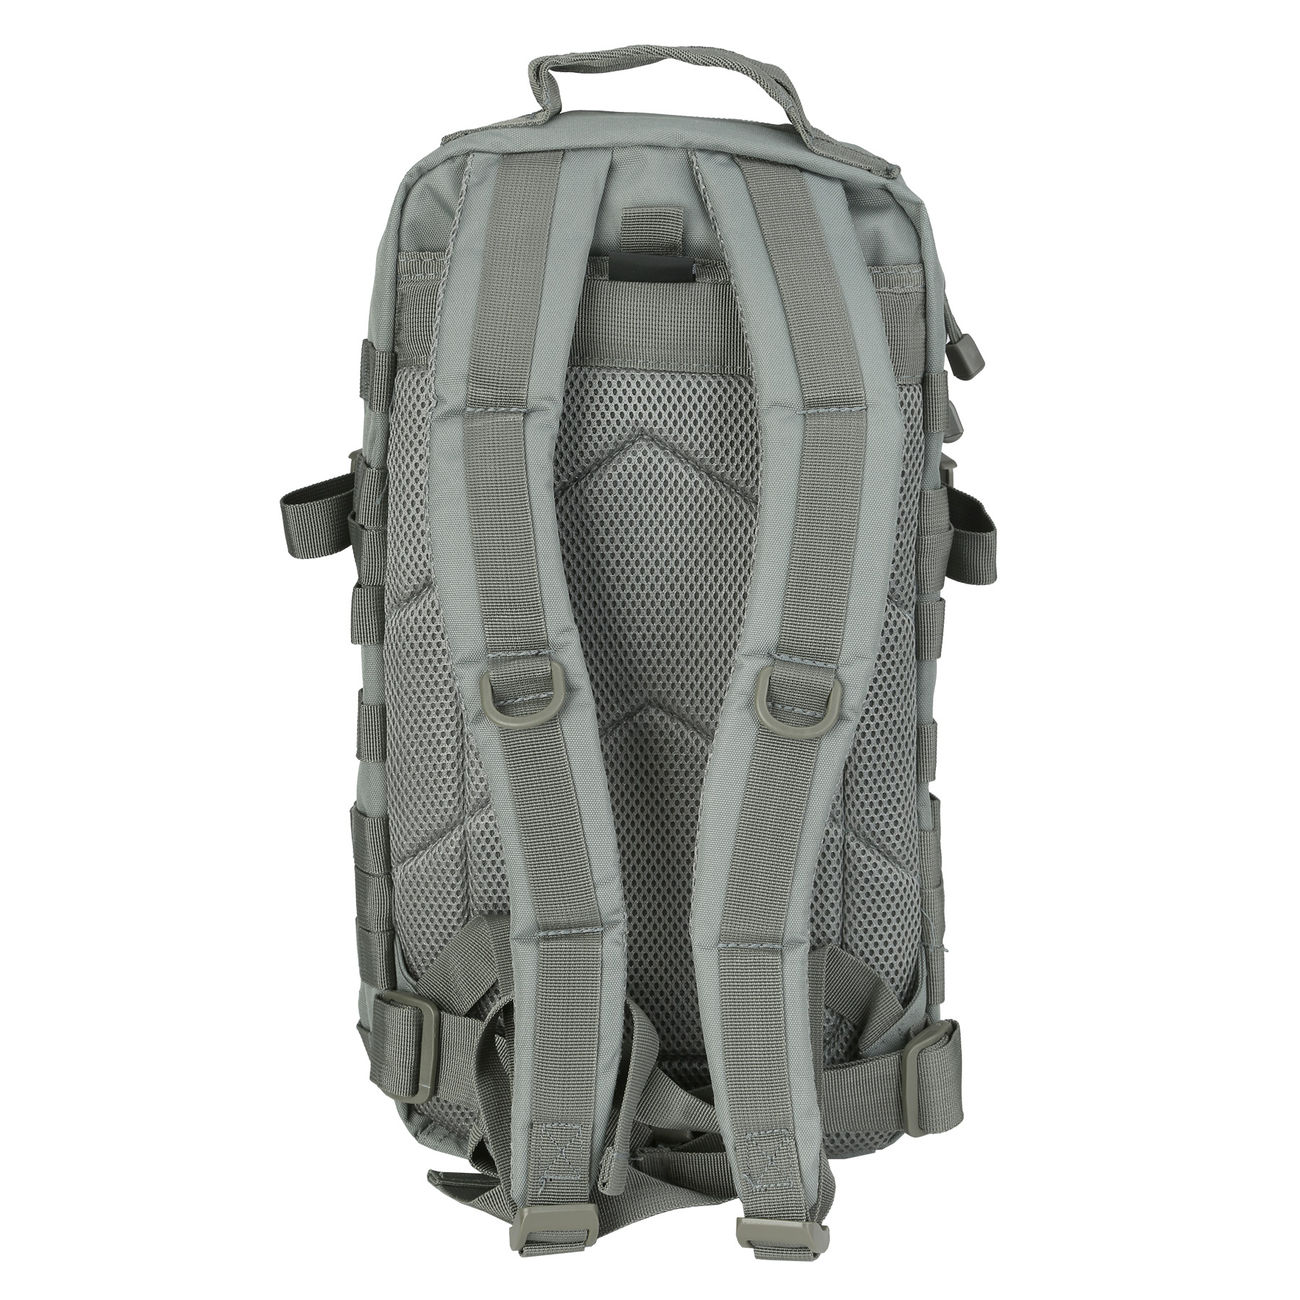 Mil-Tec Rucksack US Assault Pack I 20 Liter foliage 7